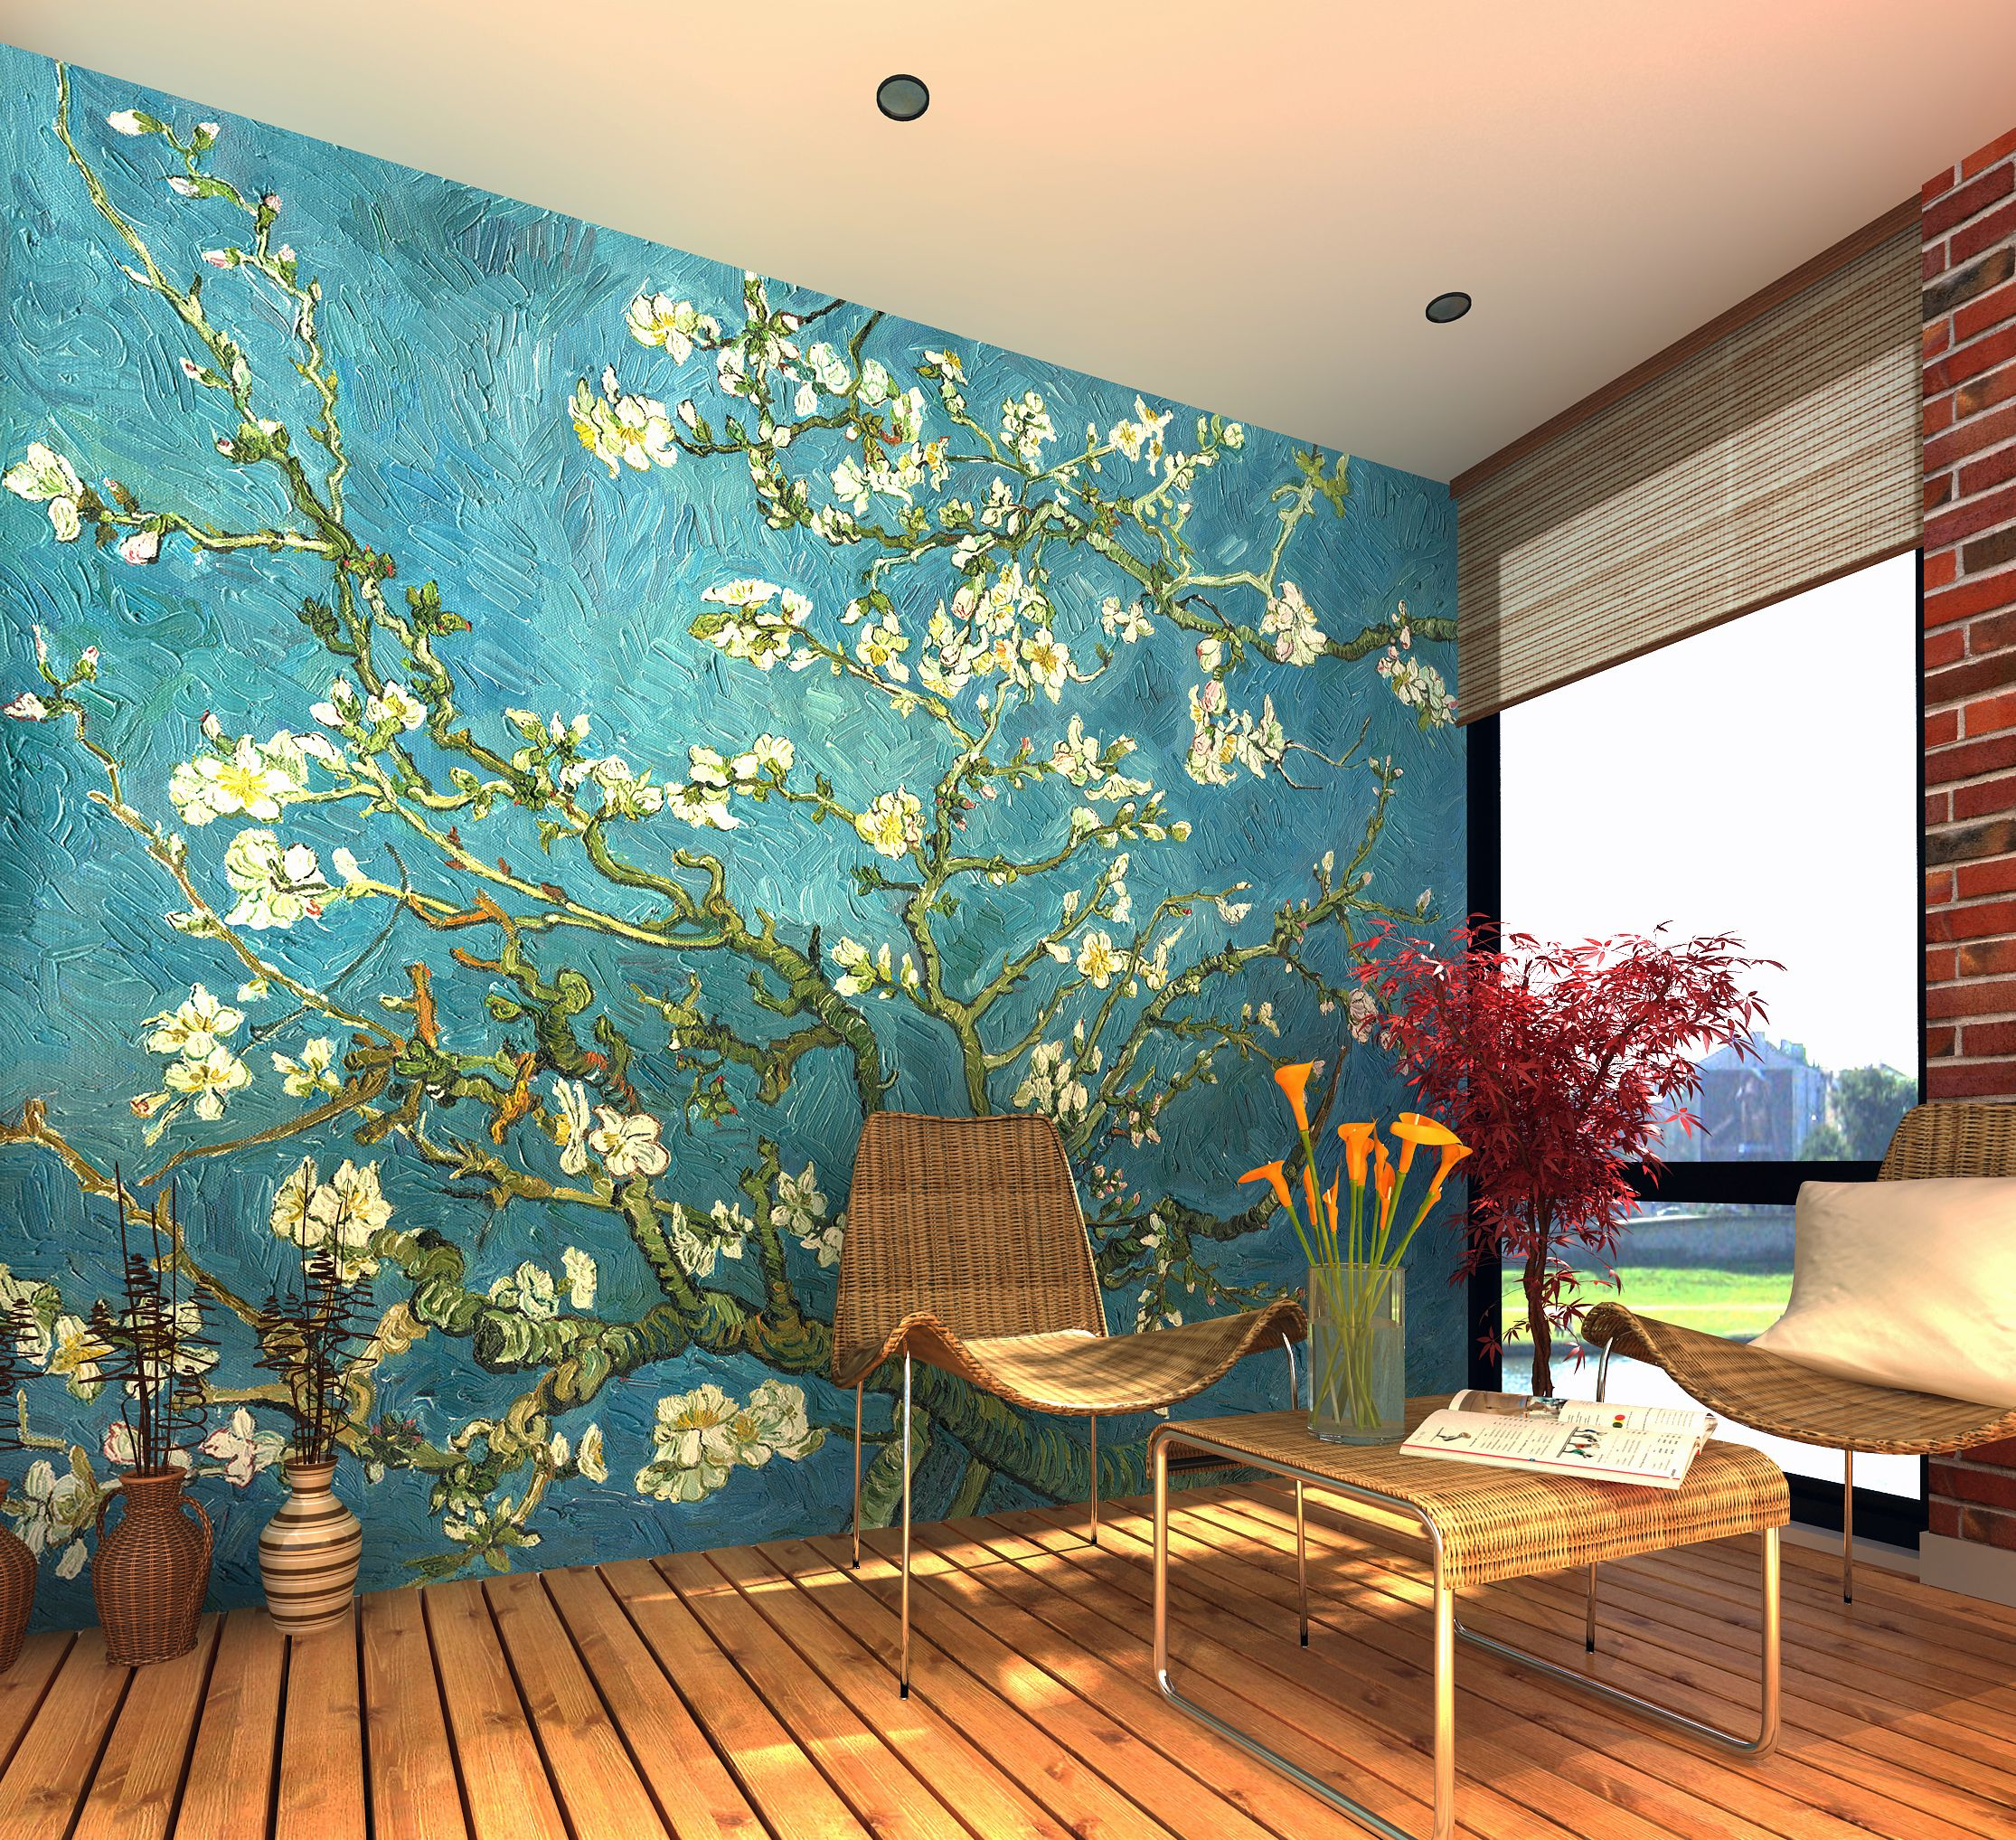 Van gogh almond blossom wall mural wallpaper for Mural designs